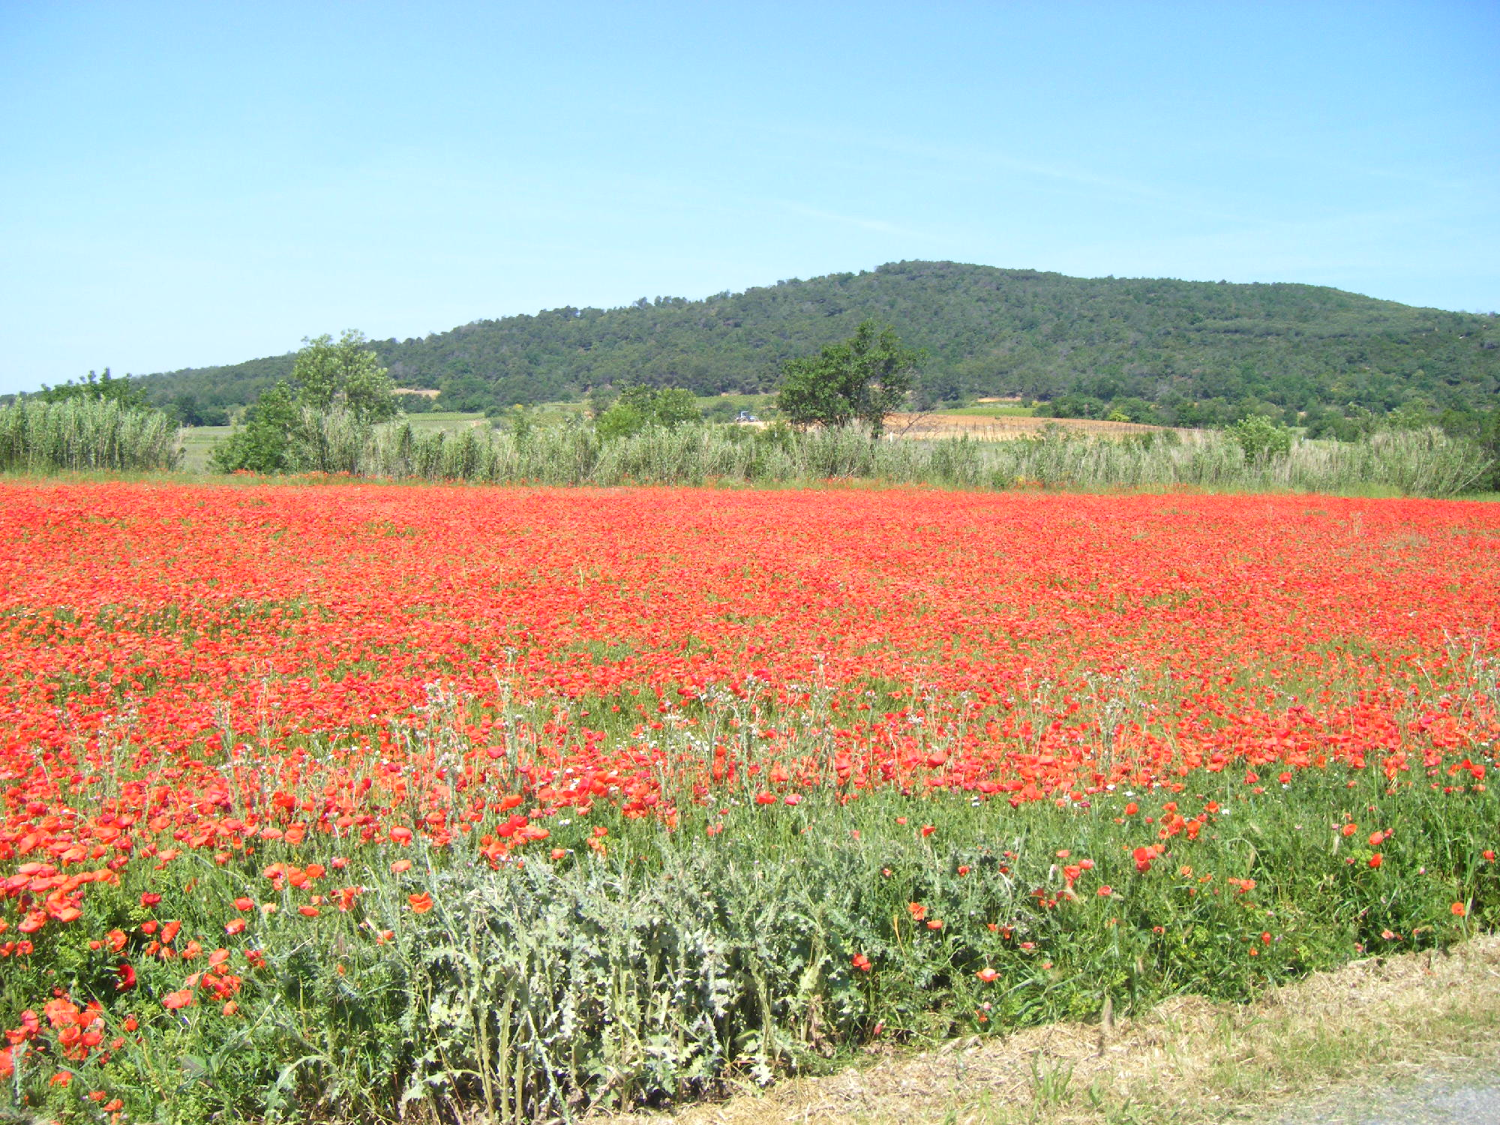 Thezan poppy fields